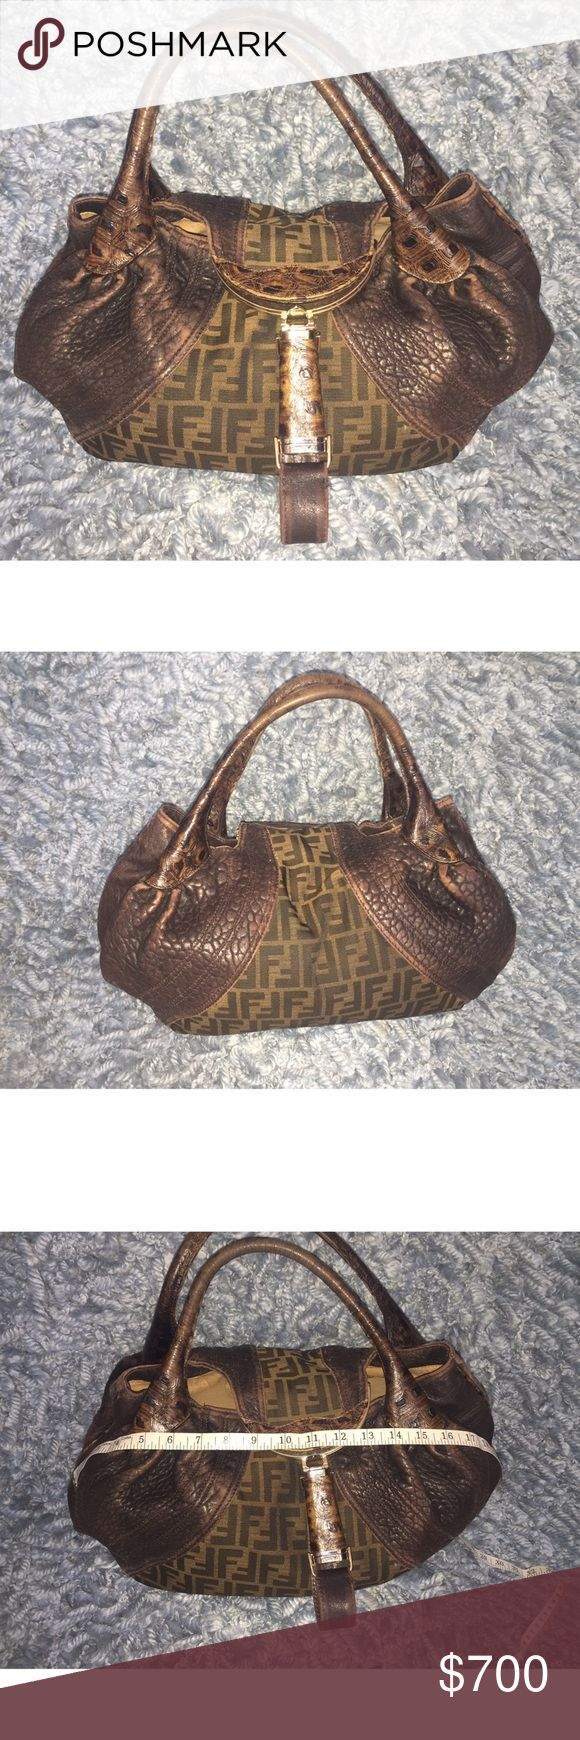 "Fendi Spy Bag Fendi Spy bag.  In excellent condition.  Comes with Dust bag.  Measurements: Handle Drop 6"", Height 10"", Width 13"", Depth 5"".  Because of the shape, the measurements may not be true to what i have found.  It can stretch out to 17"", as shown on photo. Fendi Bags Totes"